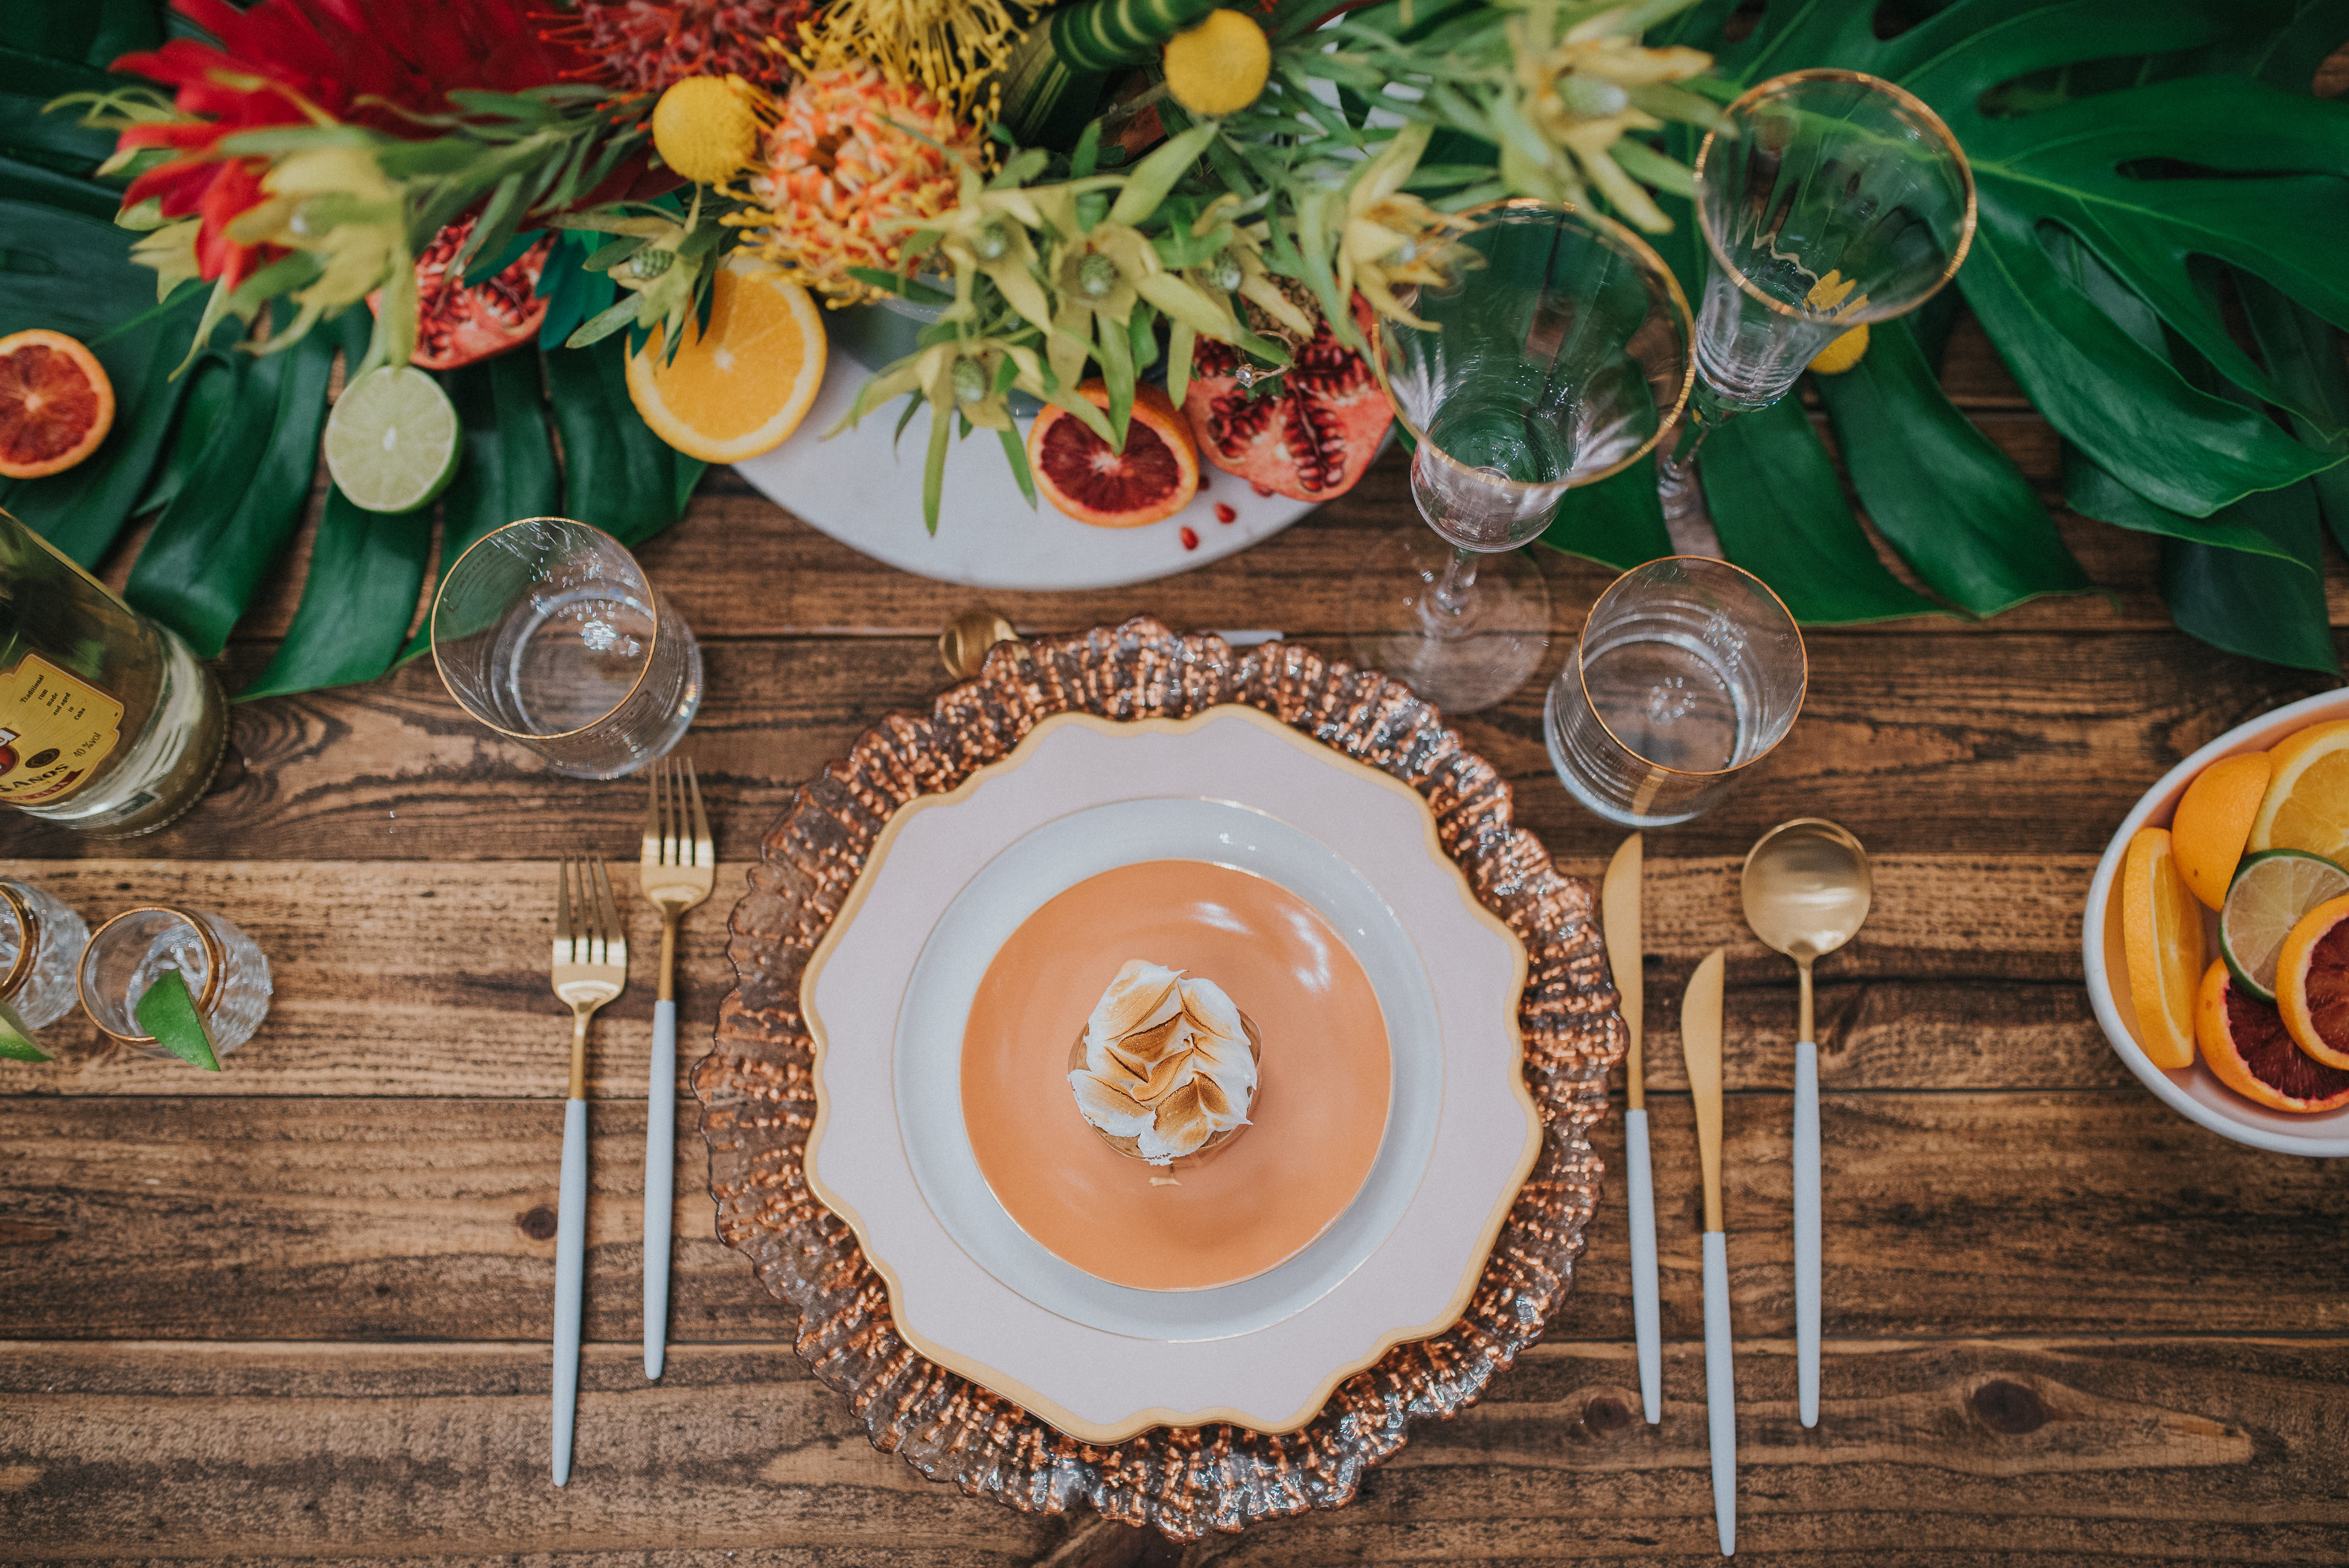 Tropical Inspired Table Setting